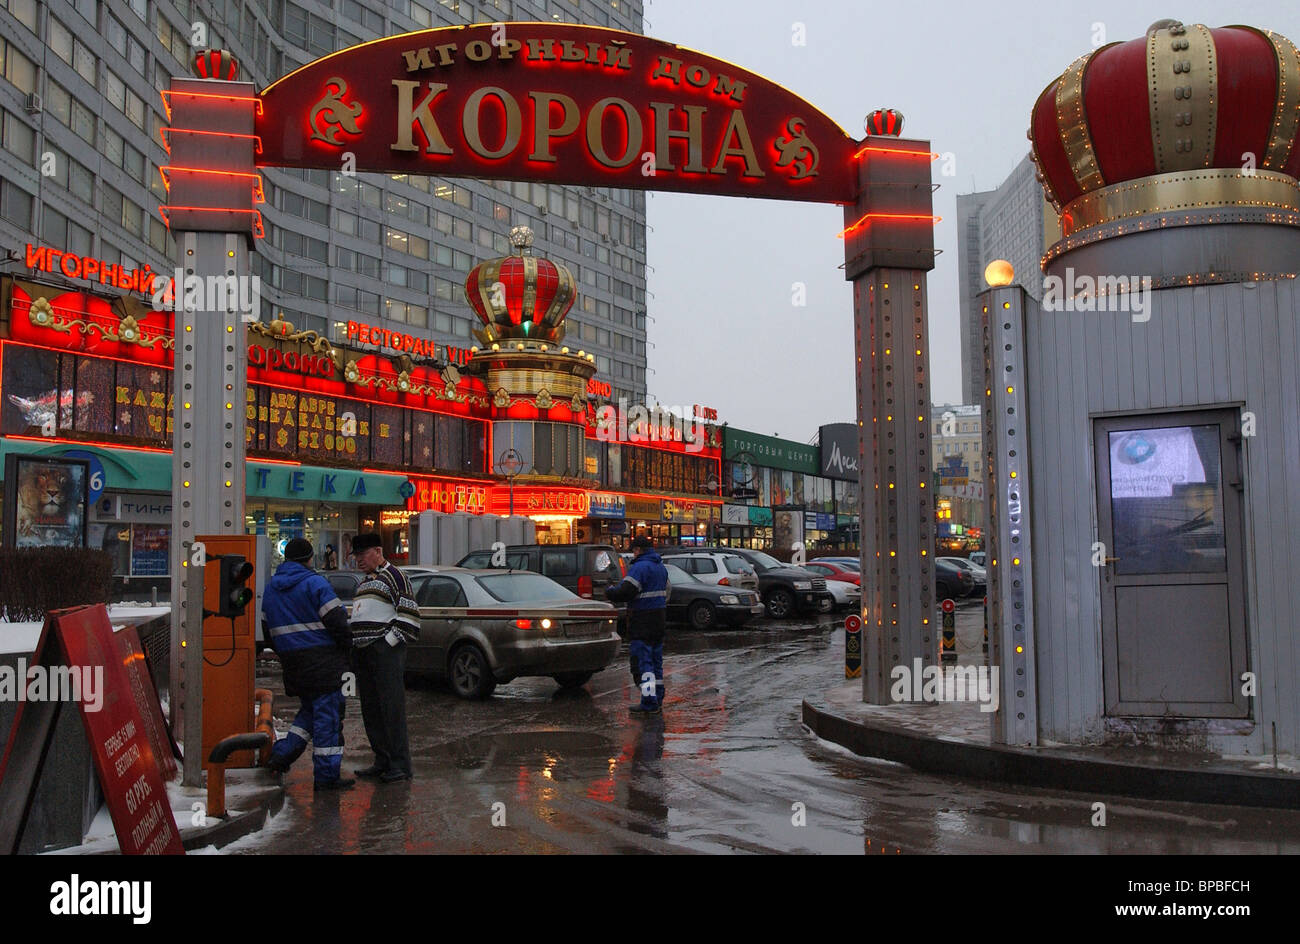 Signboards of Moscow Gambling Clubs - Stock Image